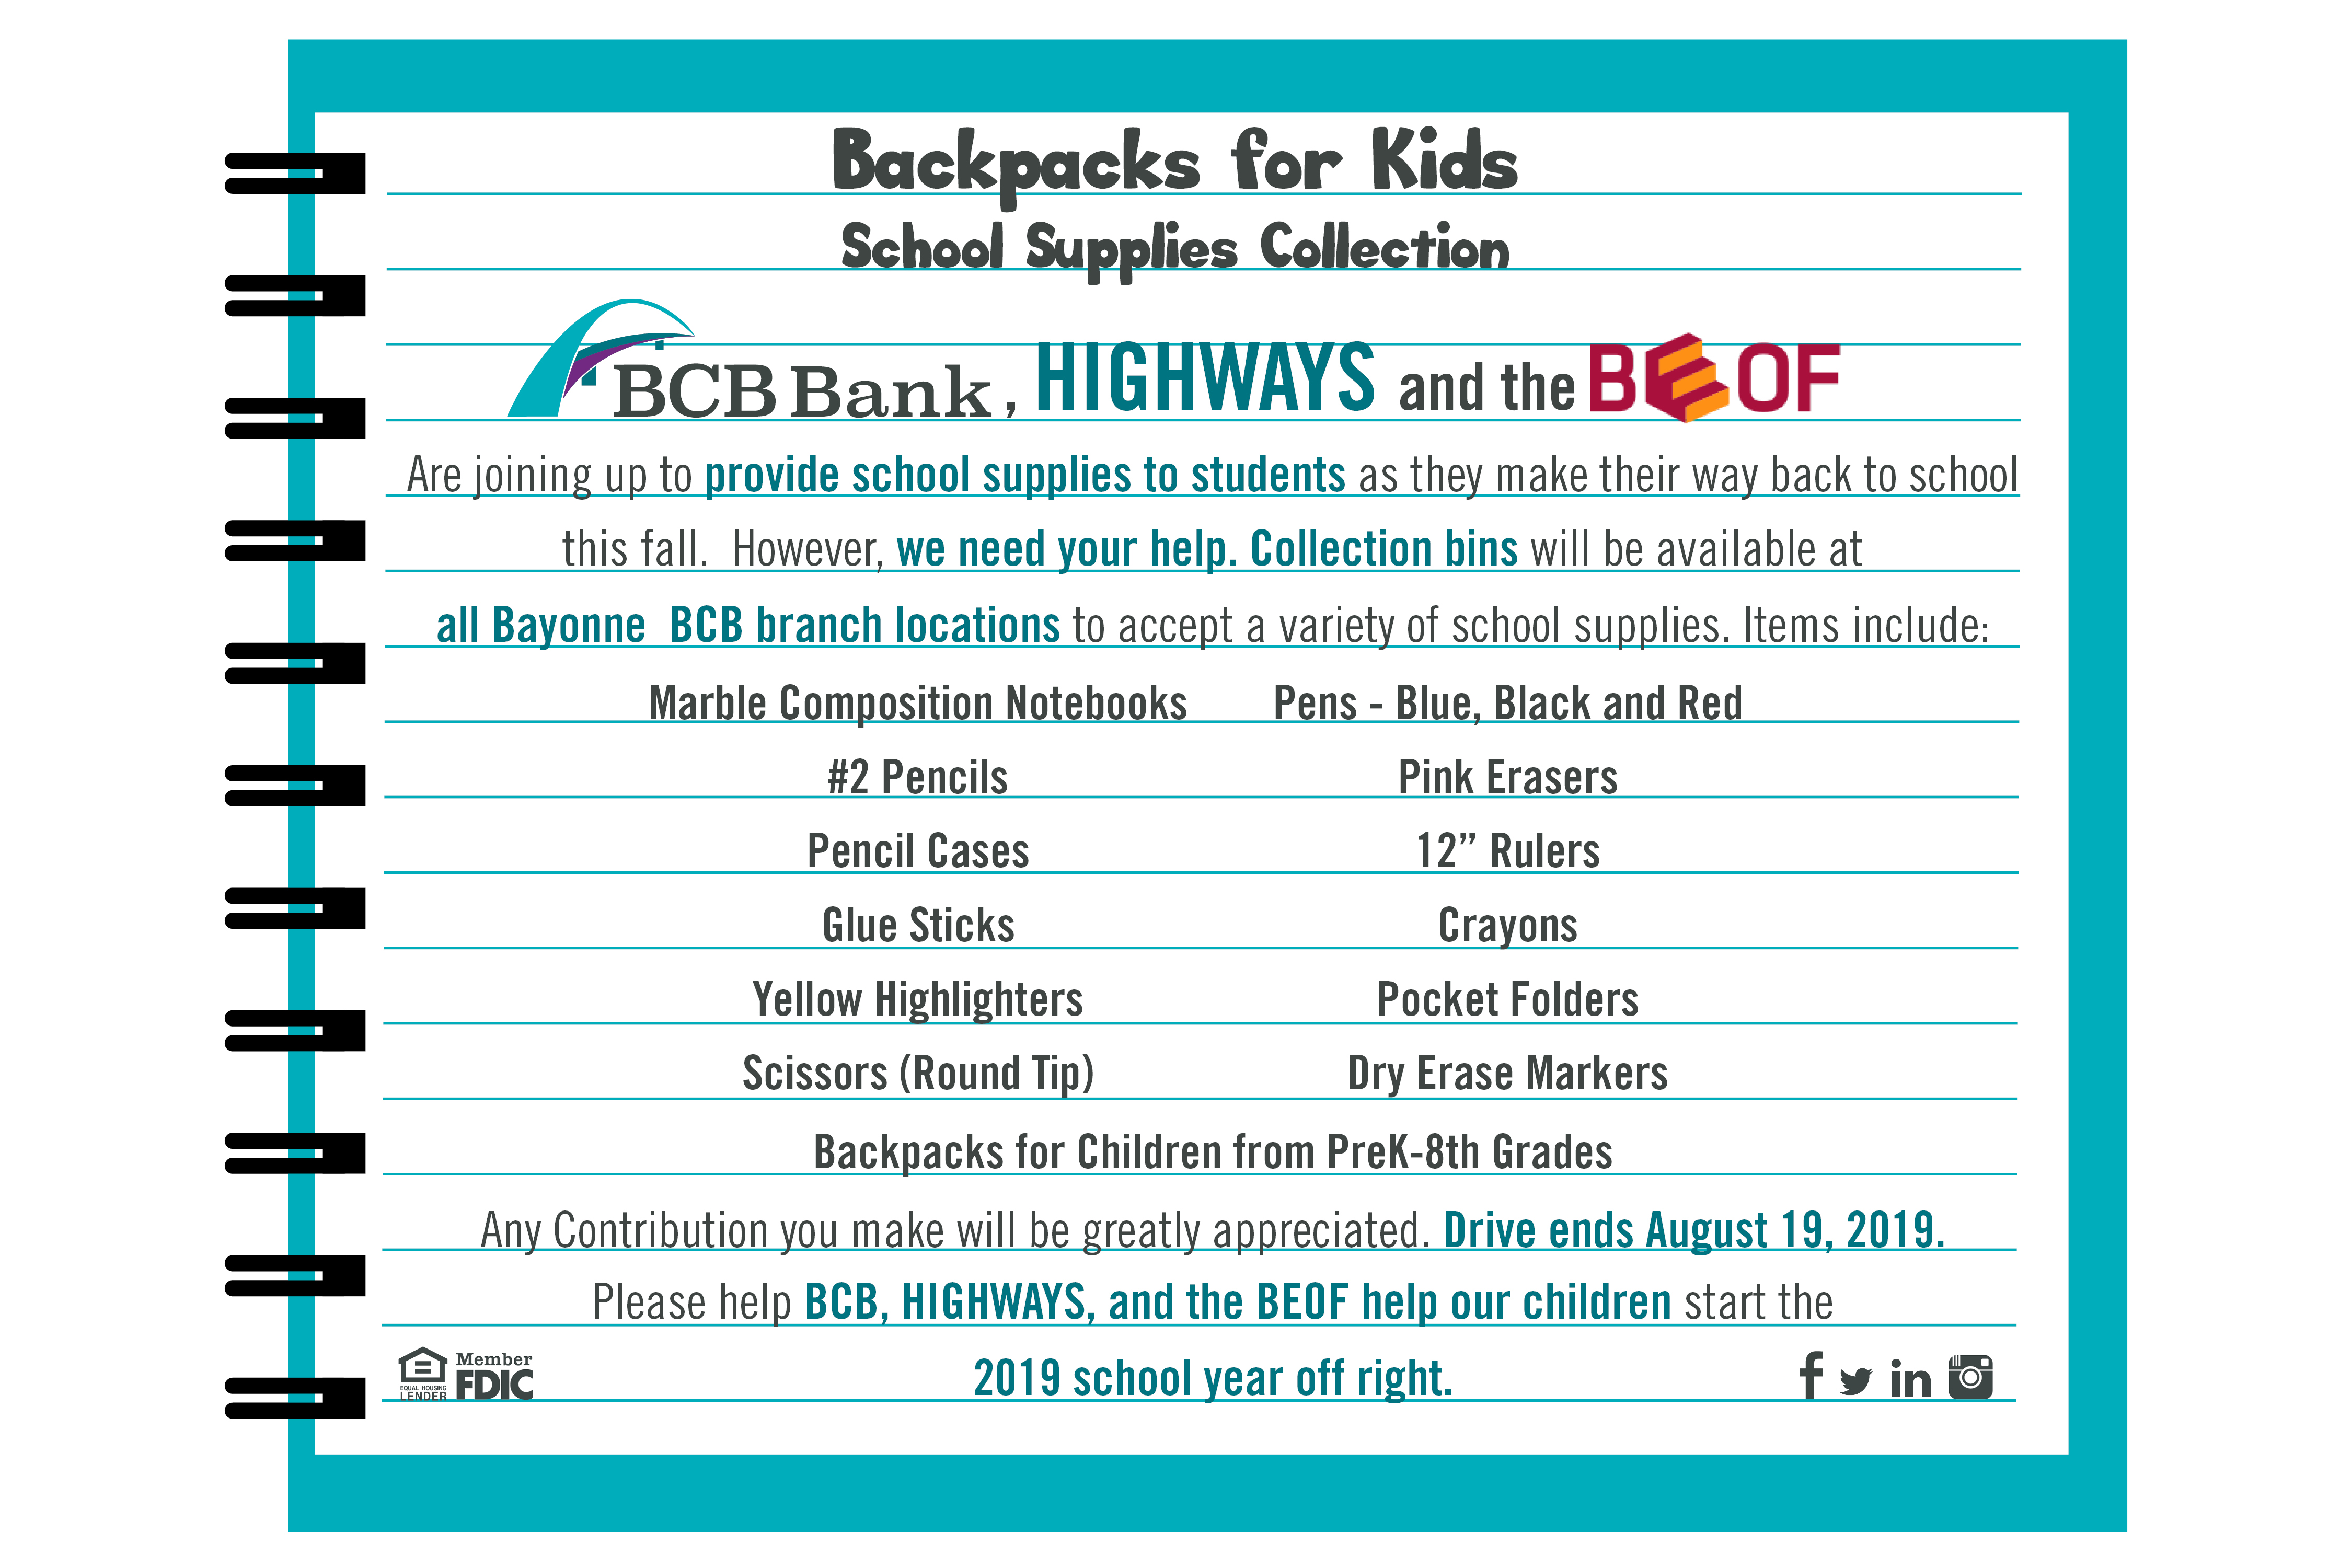 Backpacks for Kids 2019